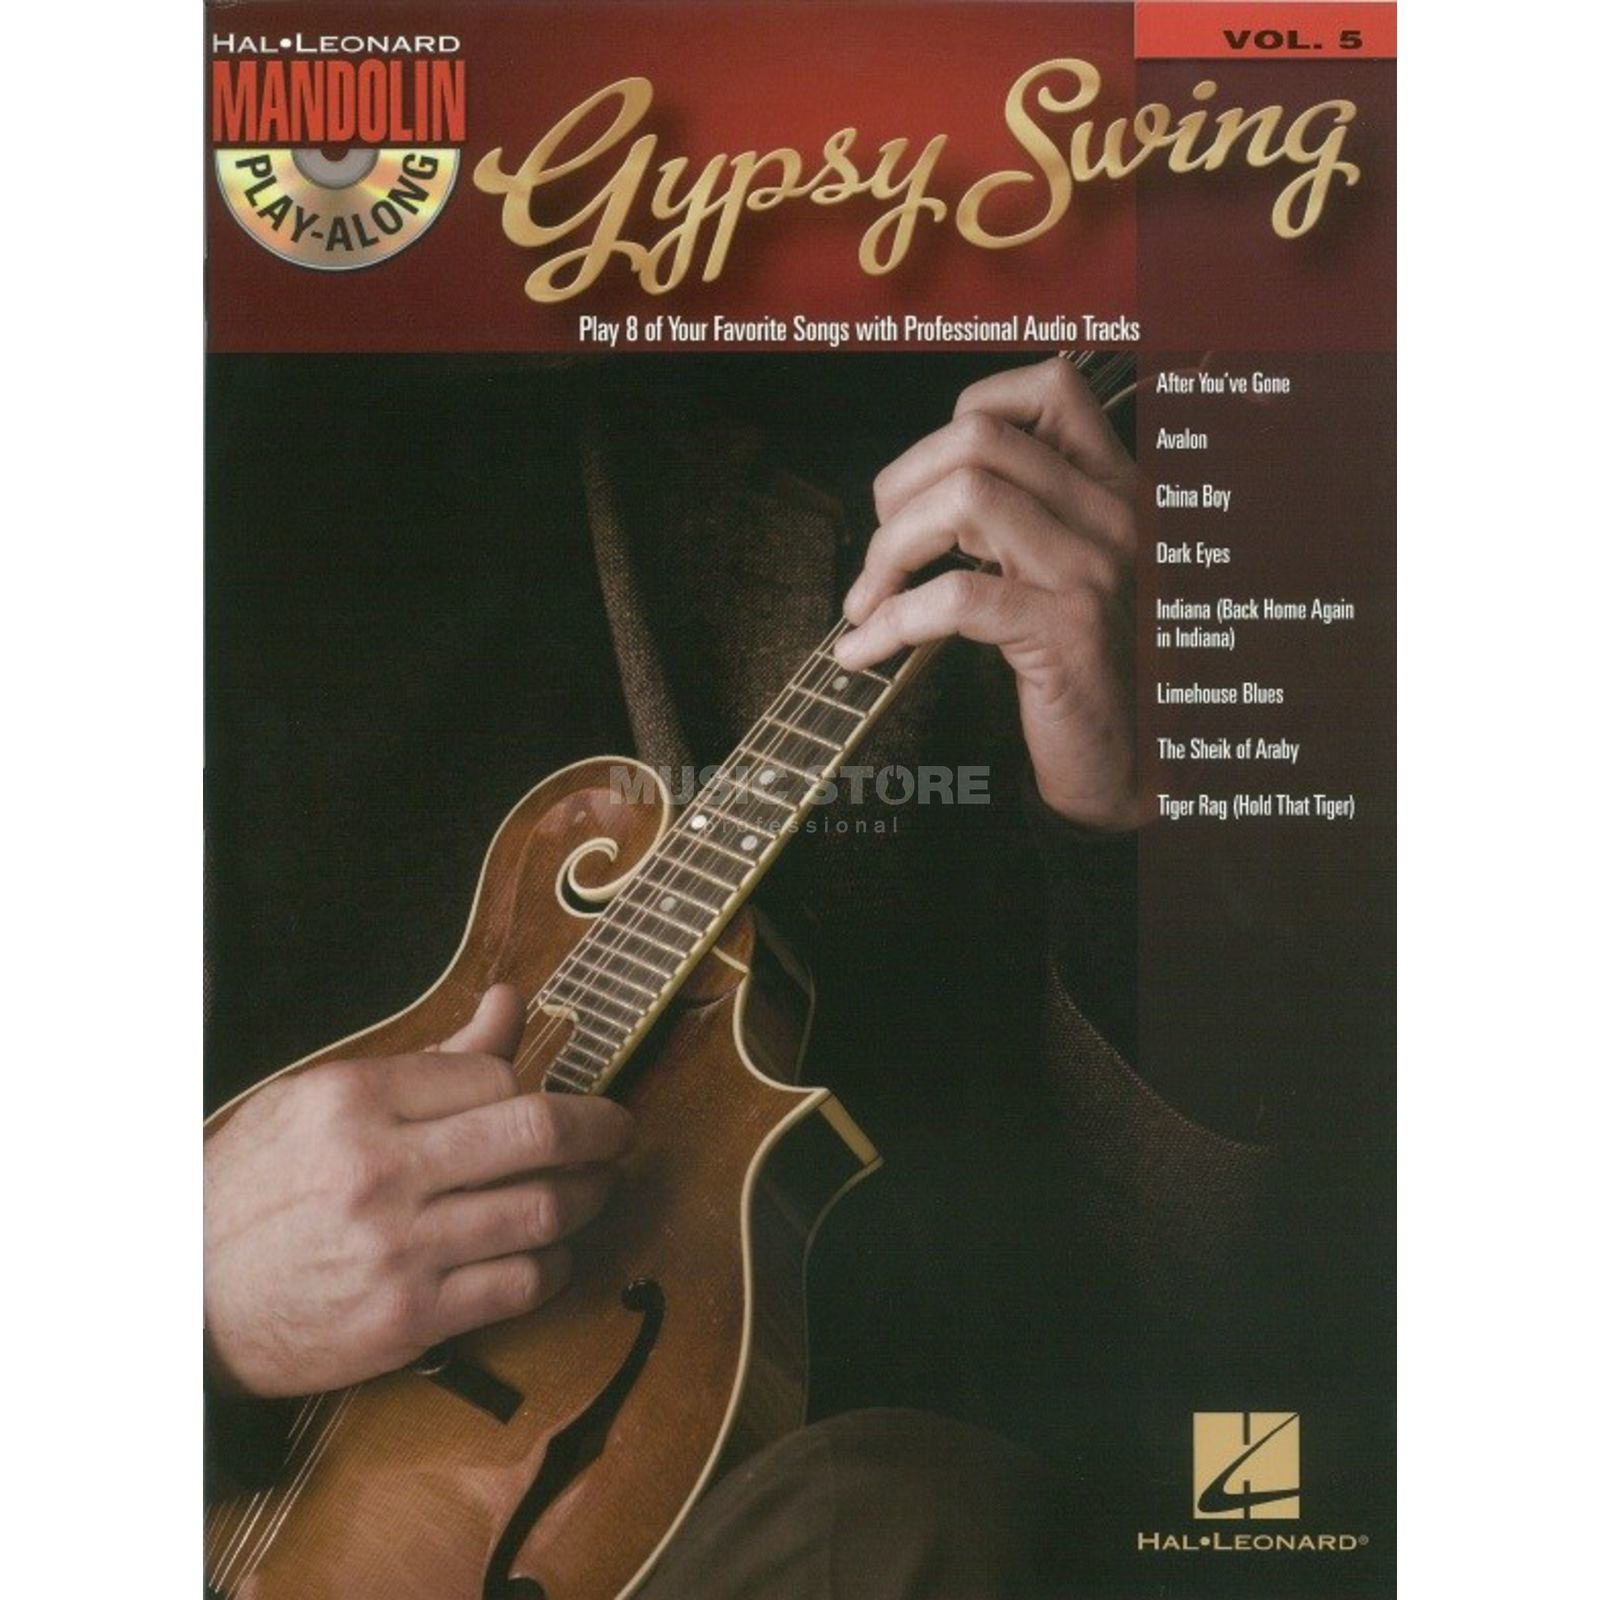 Hal Leonard Mandolin Play-Along Volume 5: Gypsy Swing Produktbild